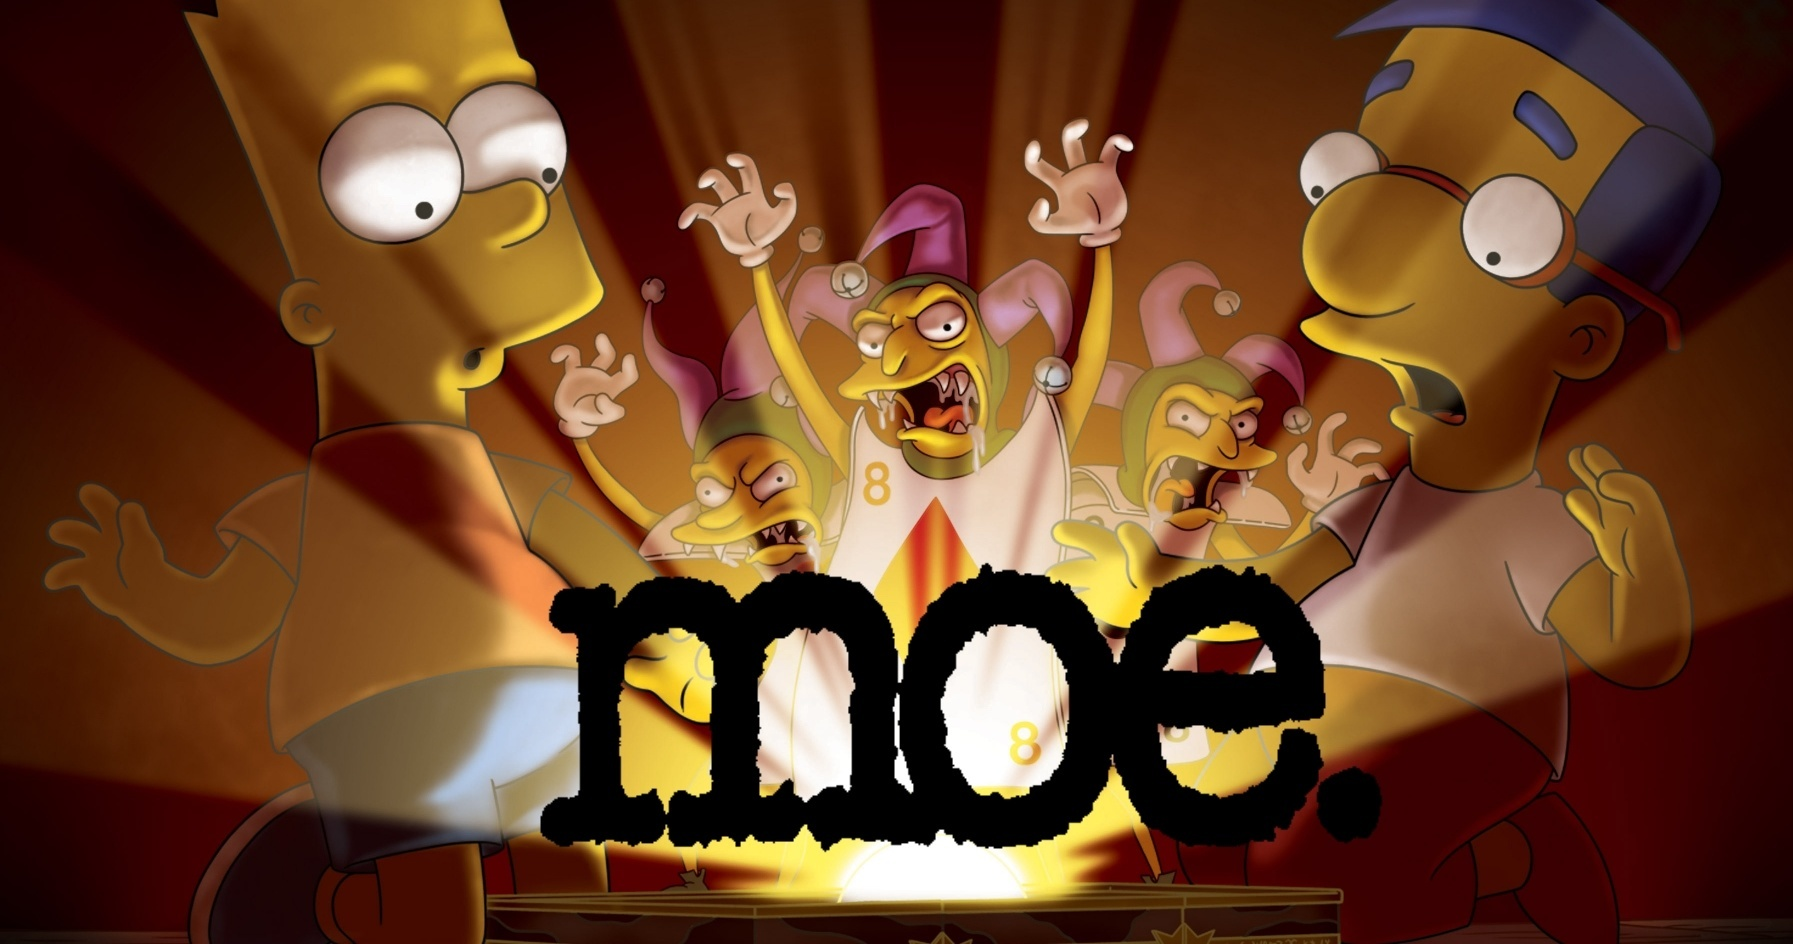 moe. plays 'the simpsons' themed halloween show in 2002